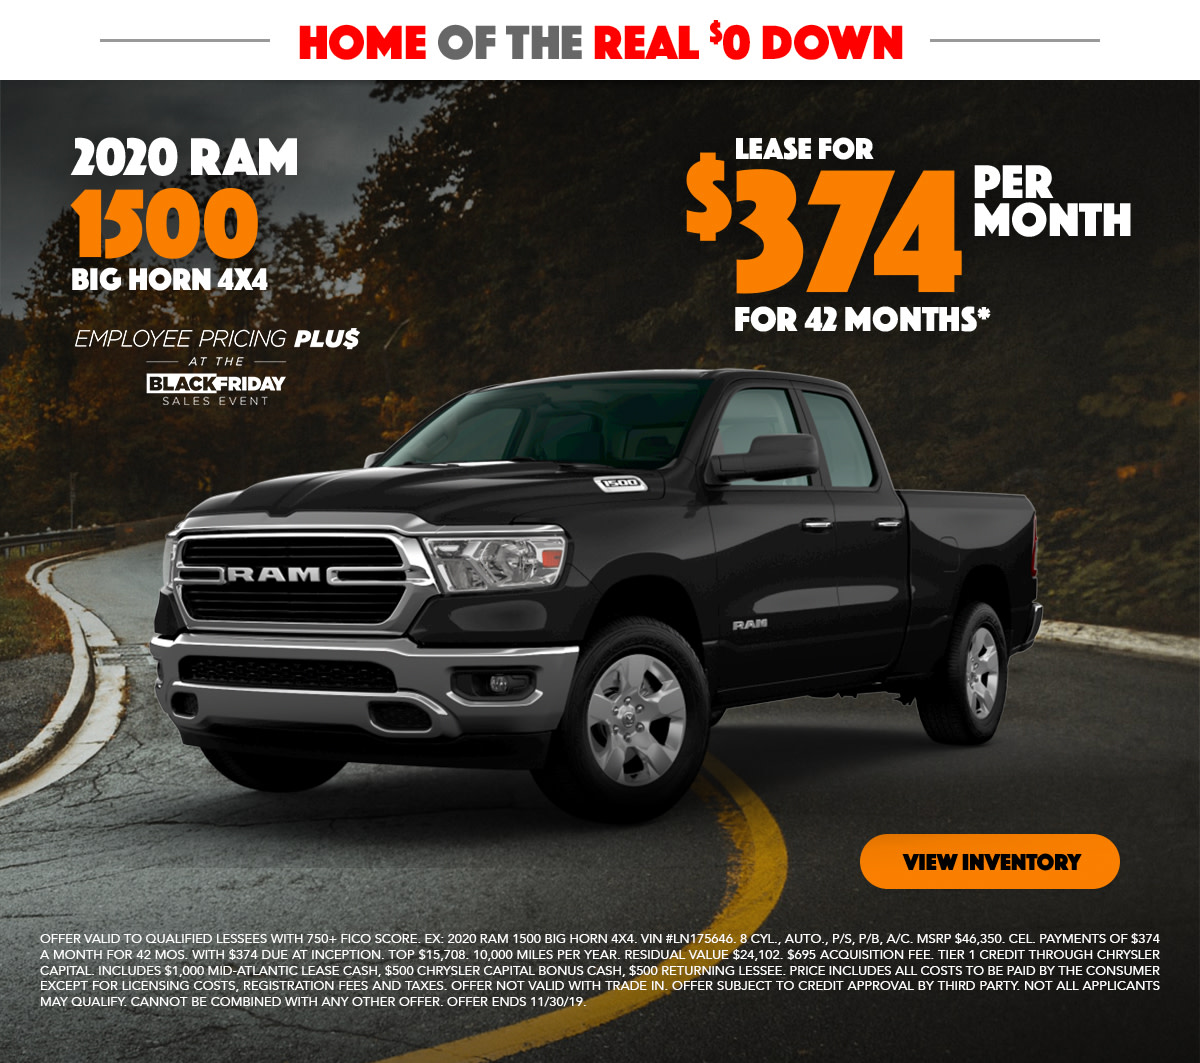 2020 RAM 1500 Lease Special